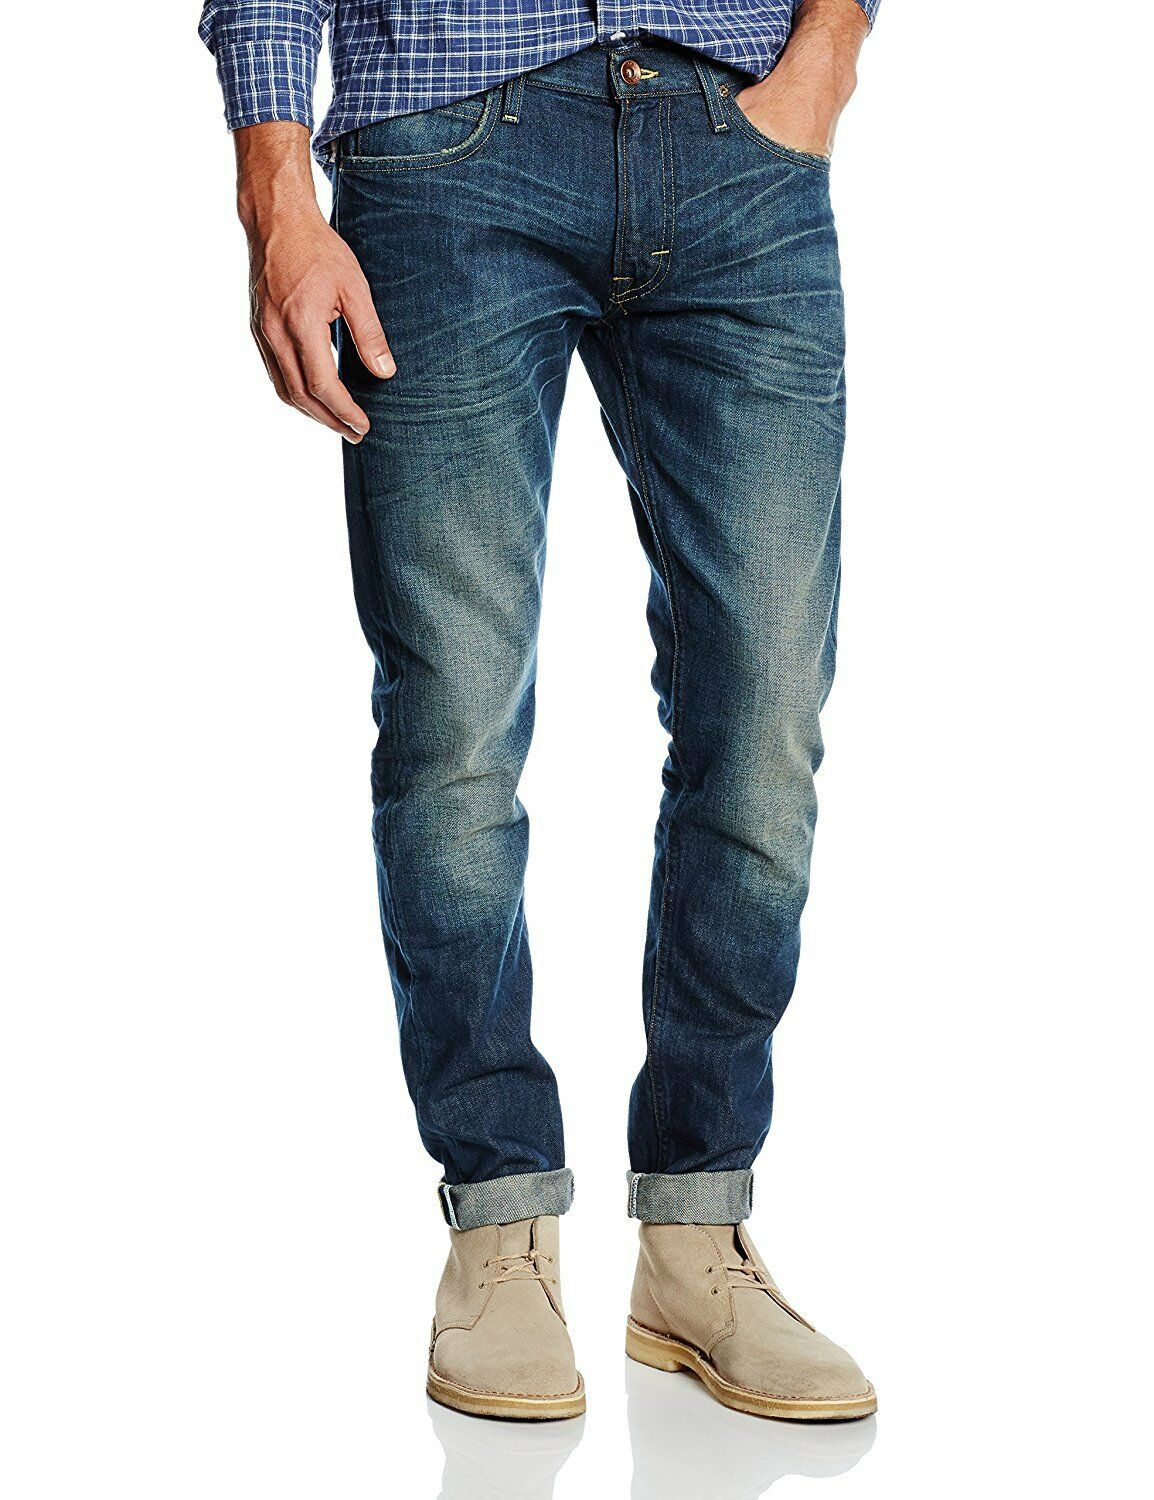 Lee Lee Lee Luke, slim fit, tapered leg, w30 l34, Pargola worn, 30 34, vintage-blu 337ff2